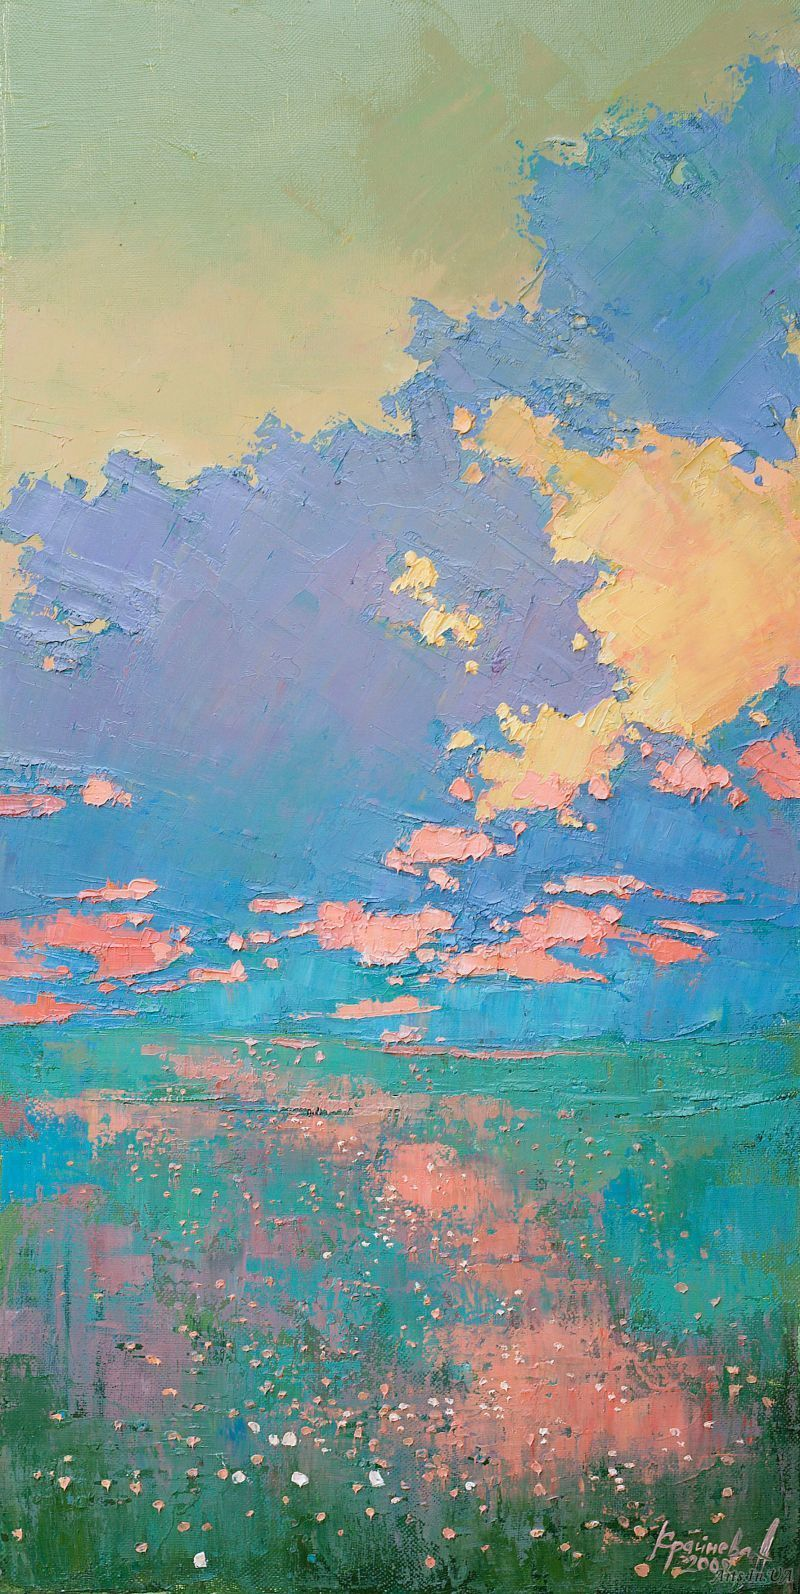 Urban Landscape Art visual artists with synesthesia landscape prints for sale